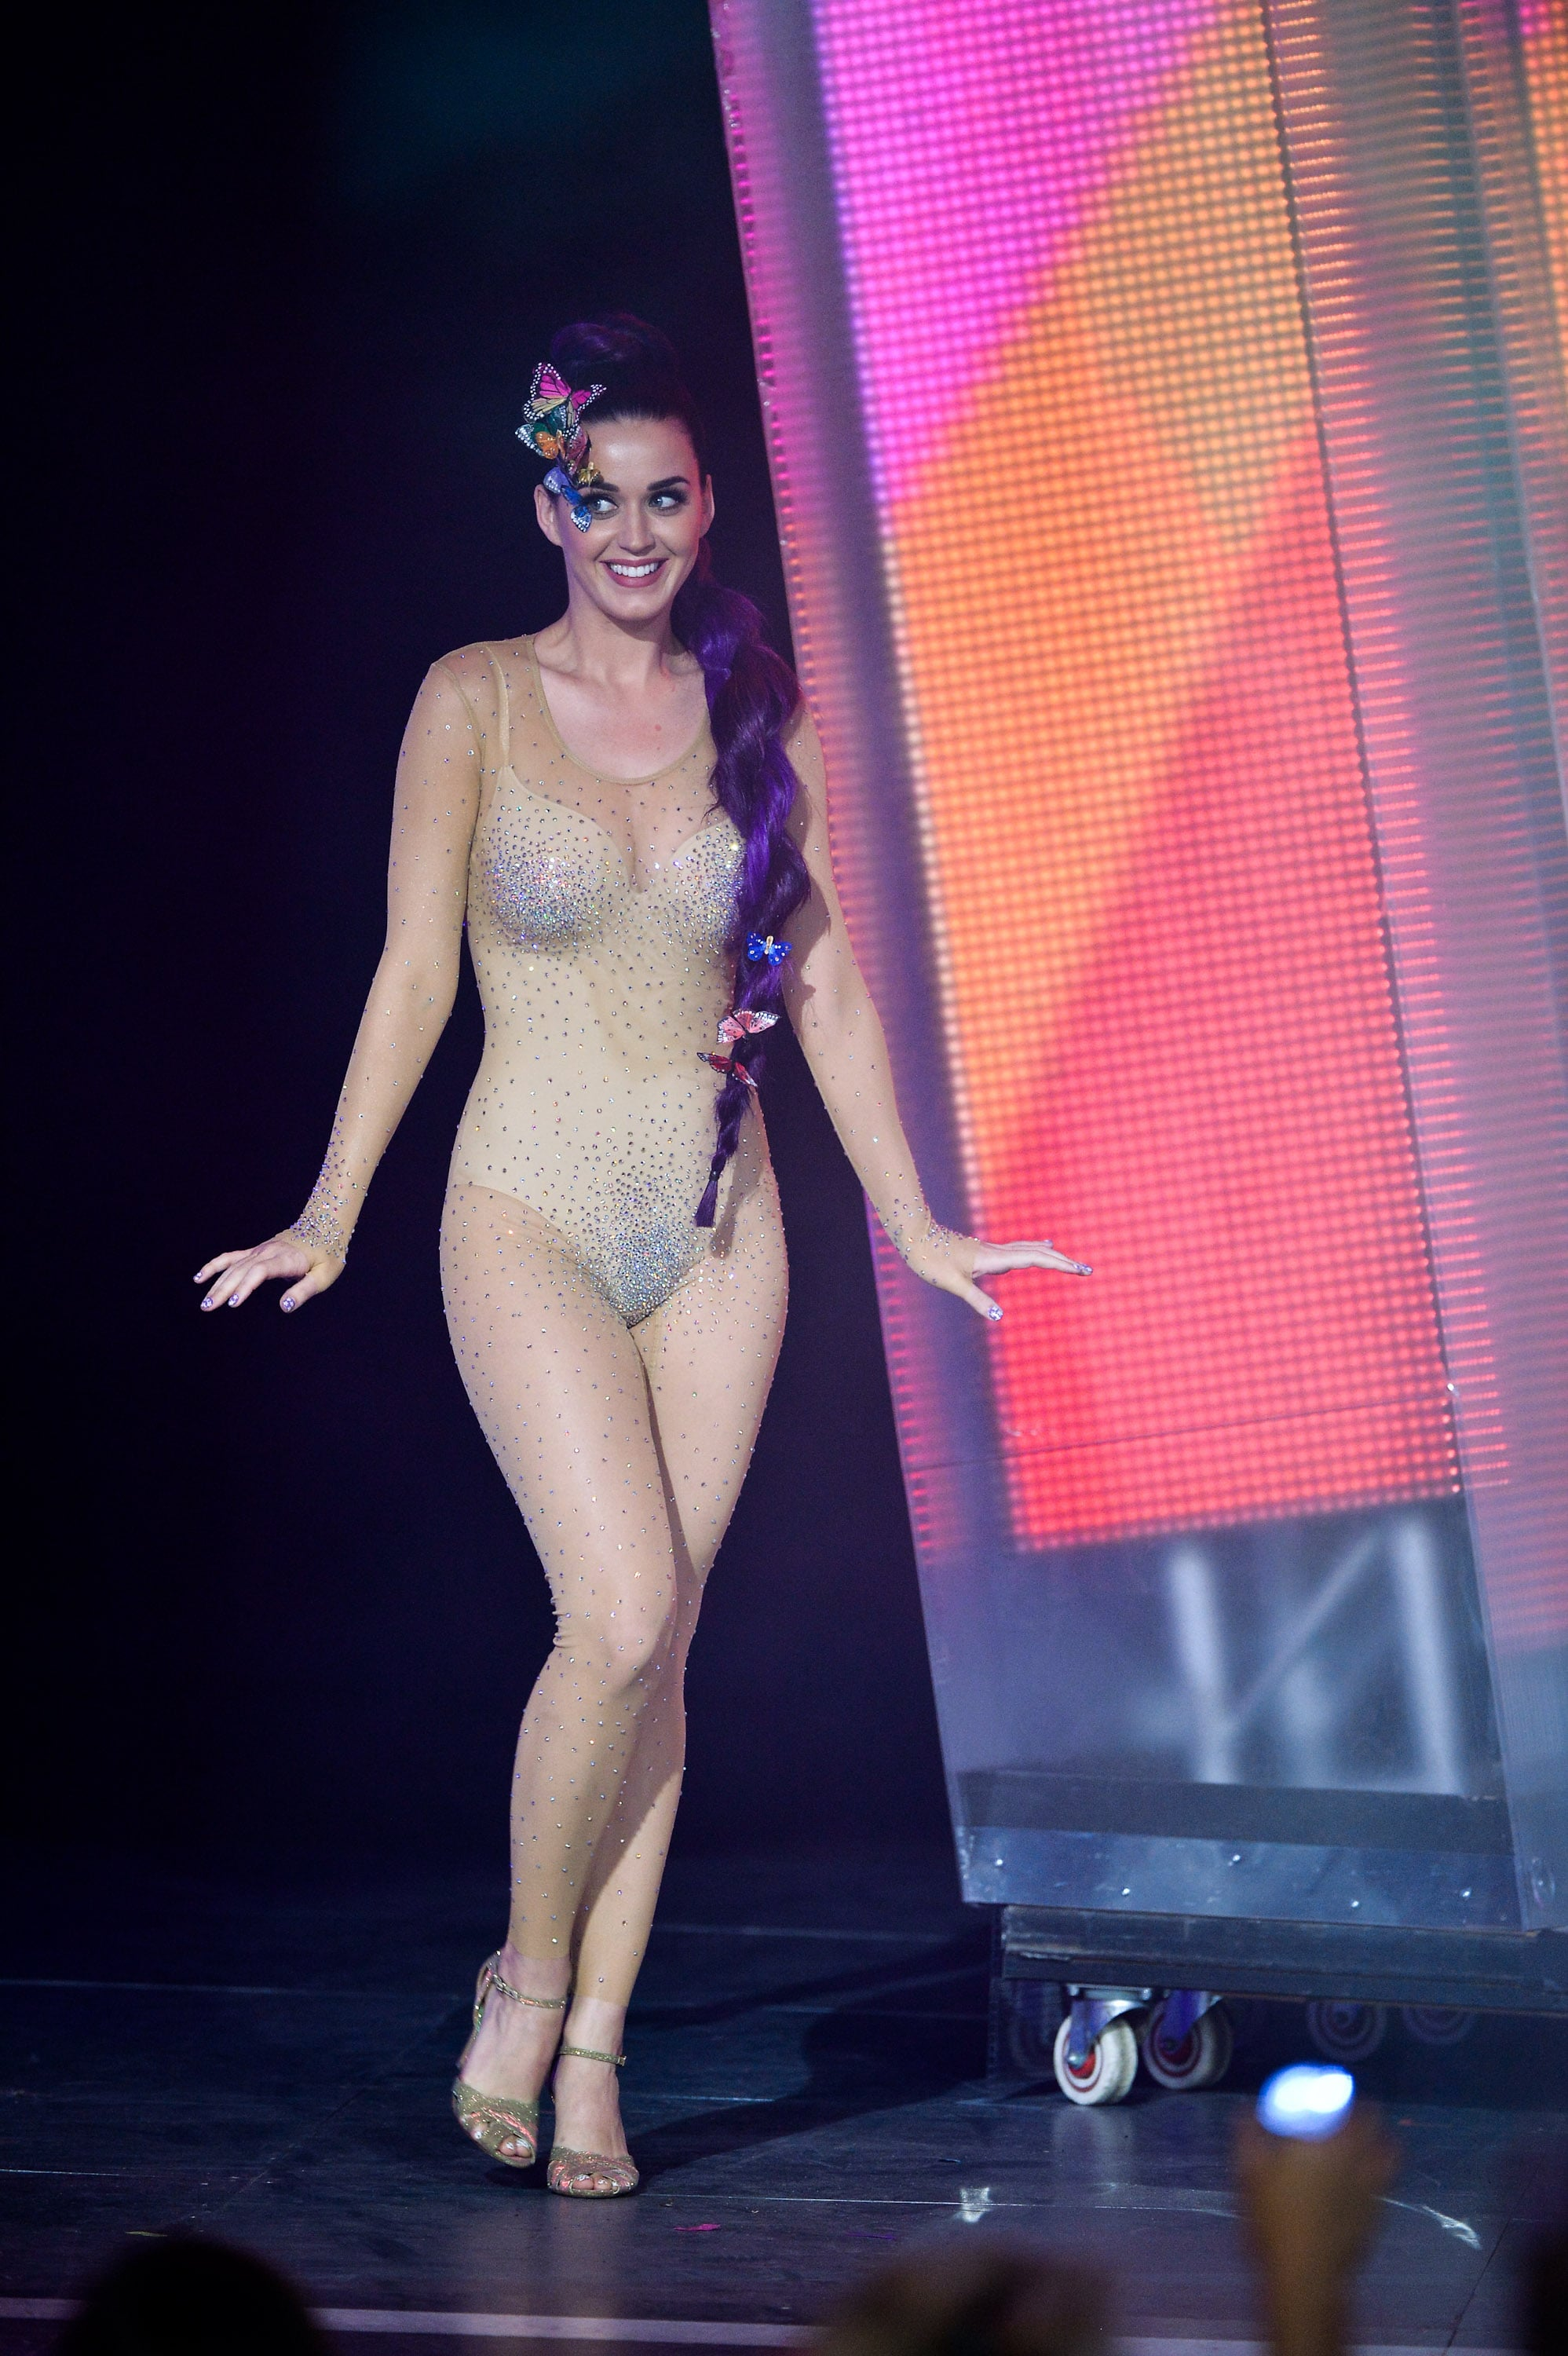 nude on stage Katy Perry walked on stage in a nude bodysuit at the MuchMusic Video Awards in Toronto